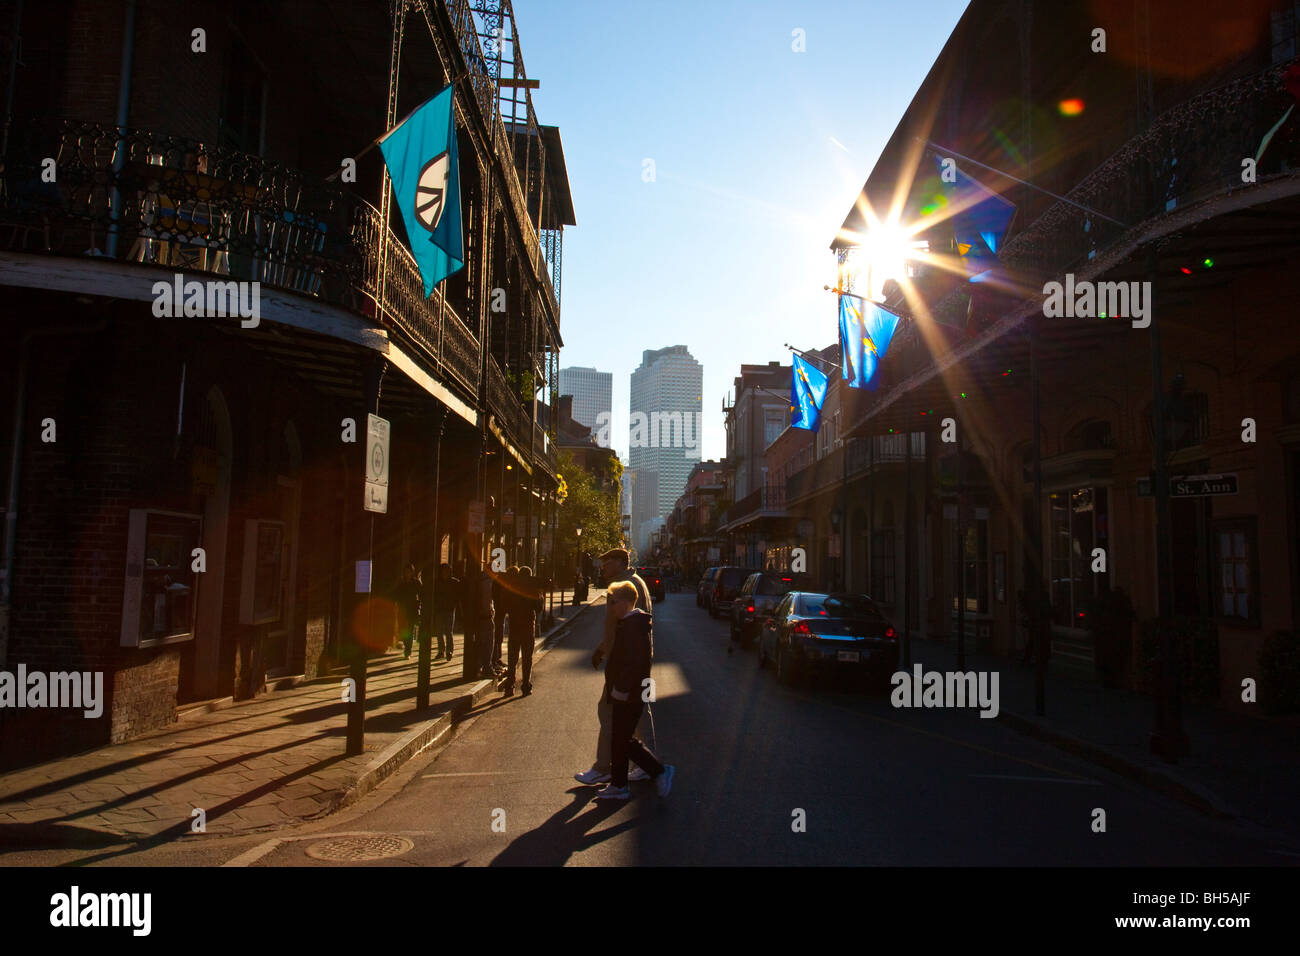 new orleans bourbon street balcony stock photos new orleans bourbon street balcony stock. Black Bedroom Furniture Sets. Home Design Ideas